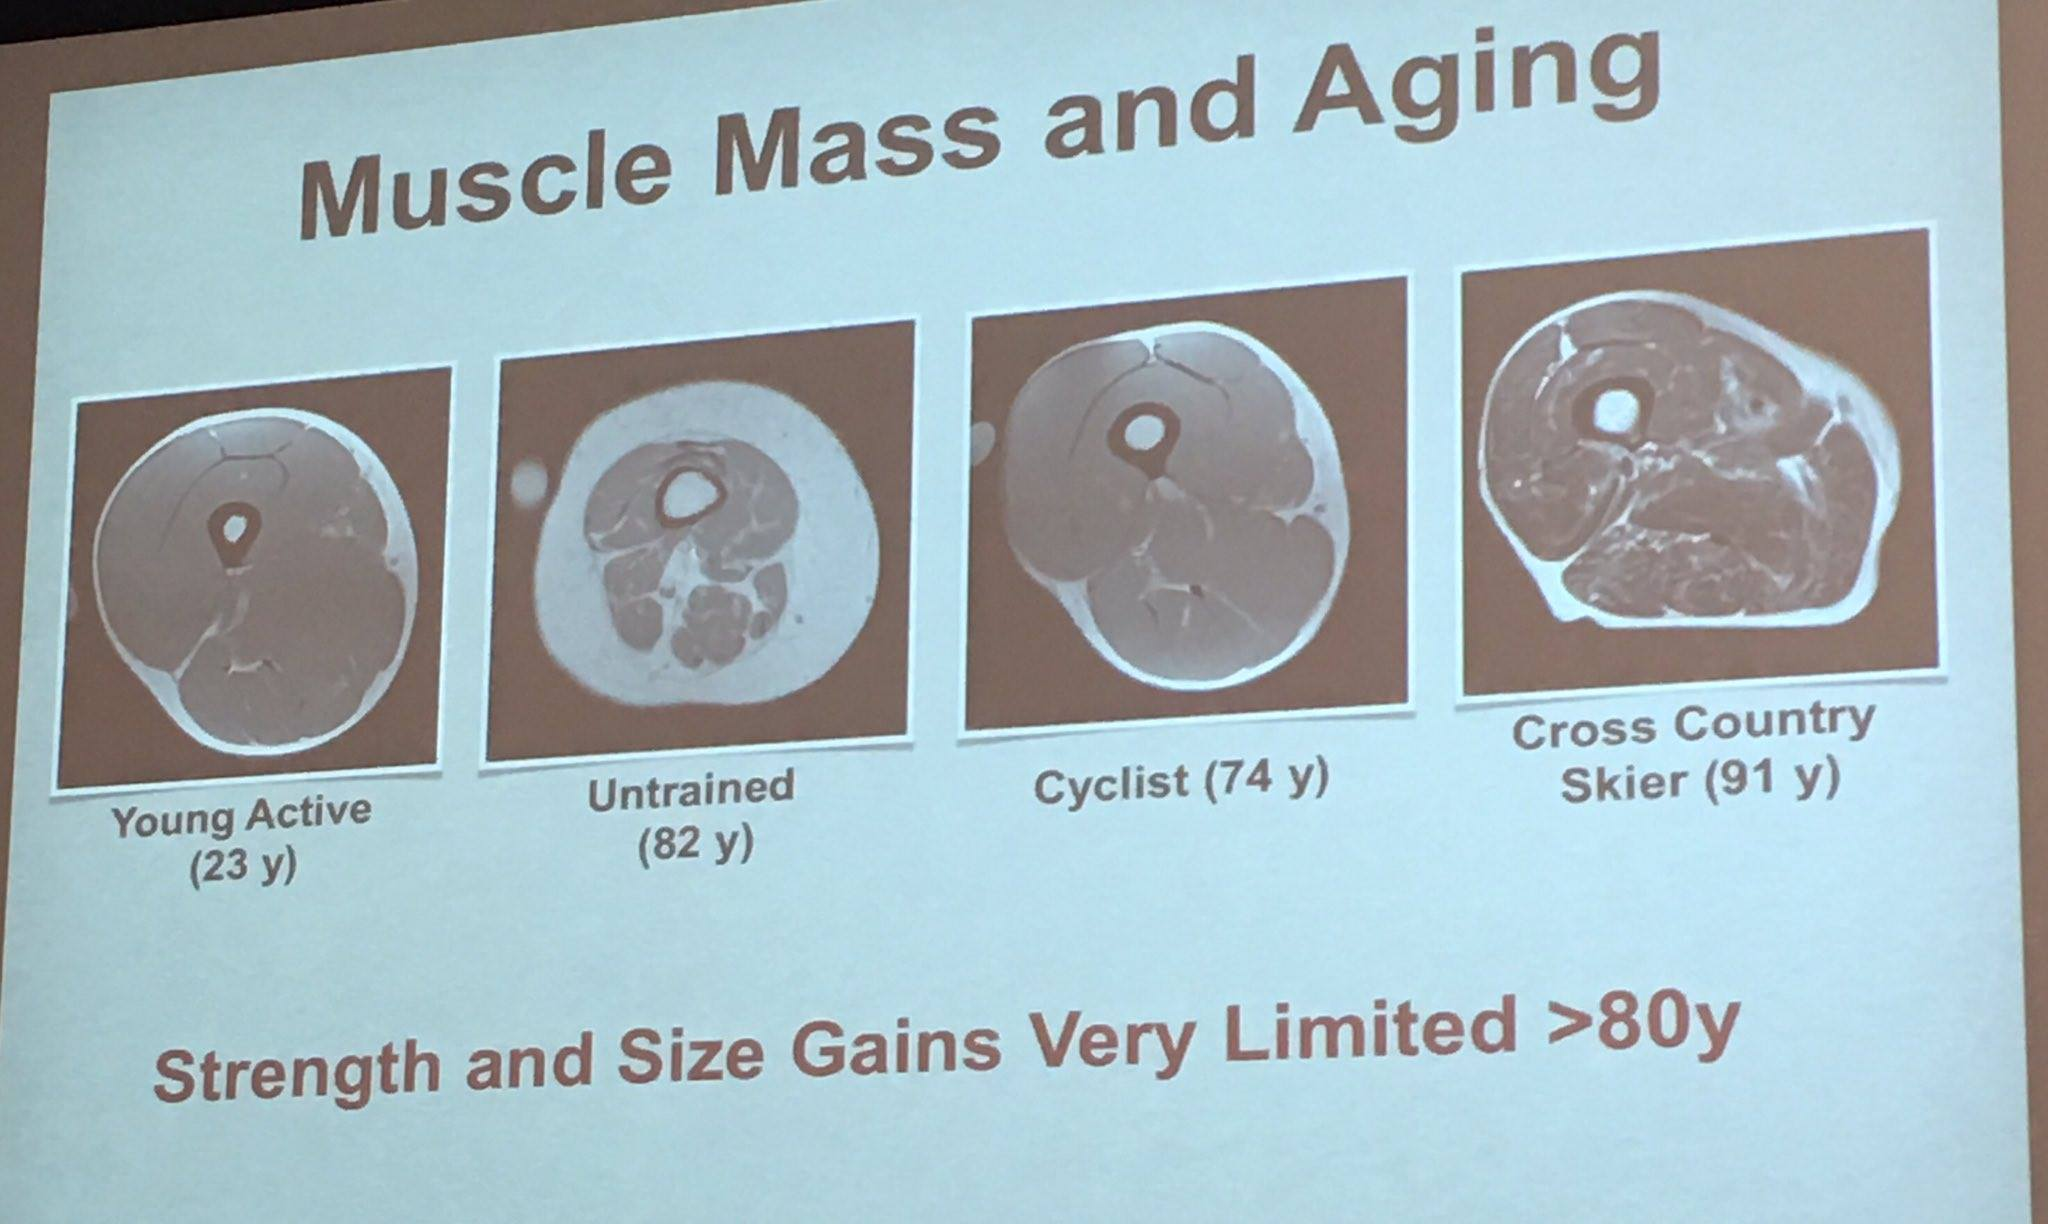 Muscle mass loss over 40